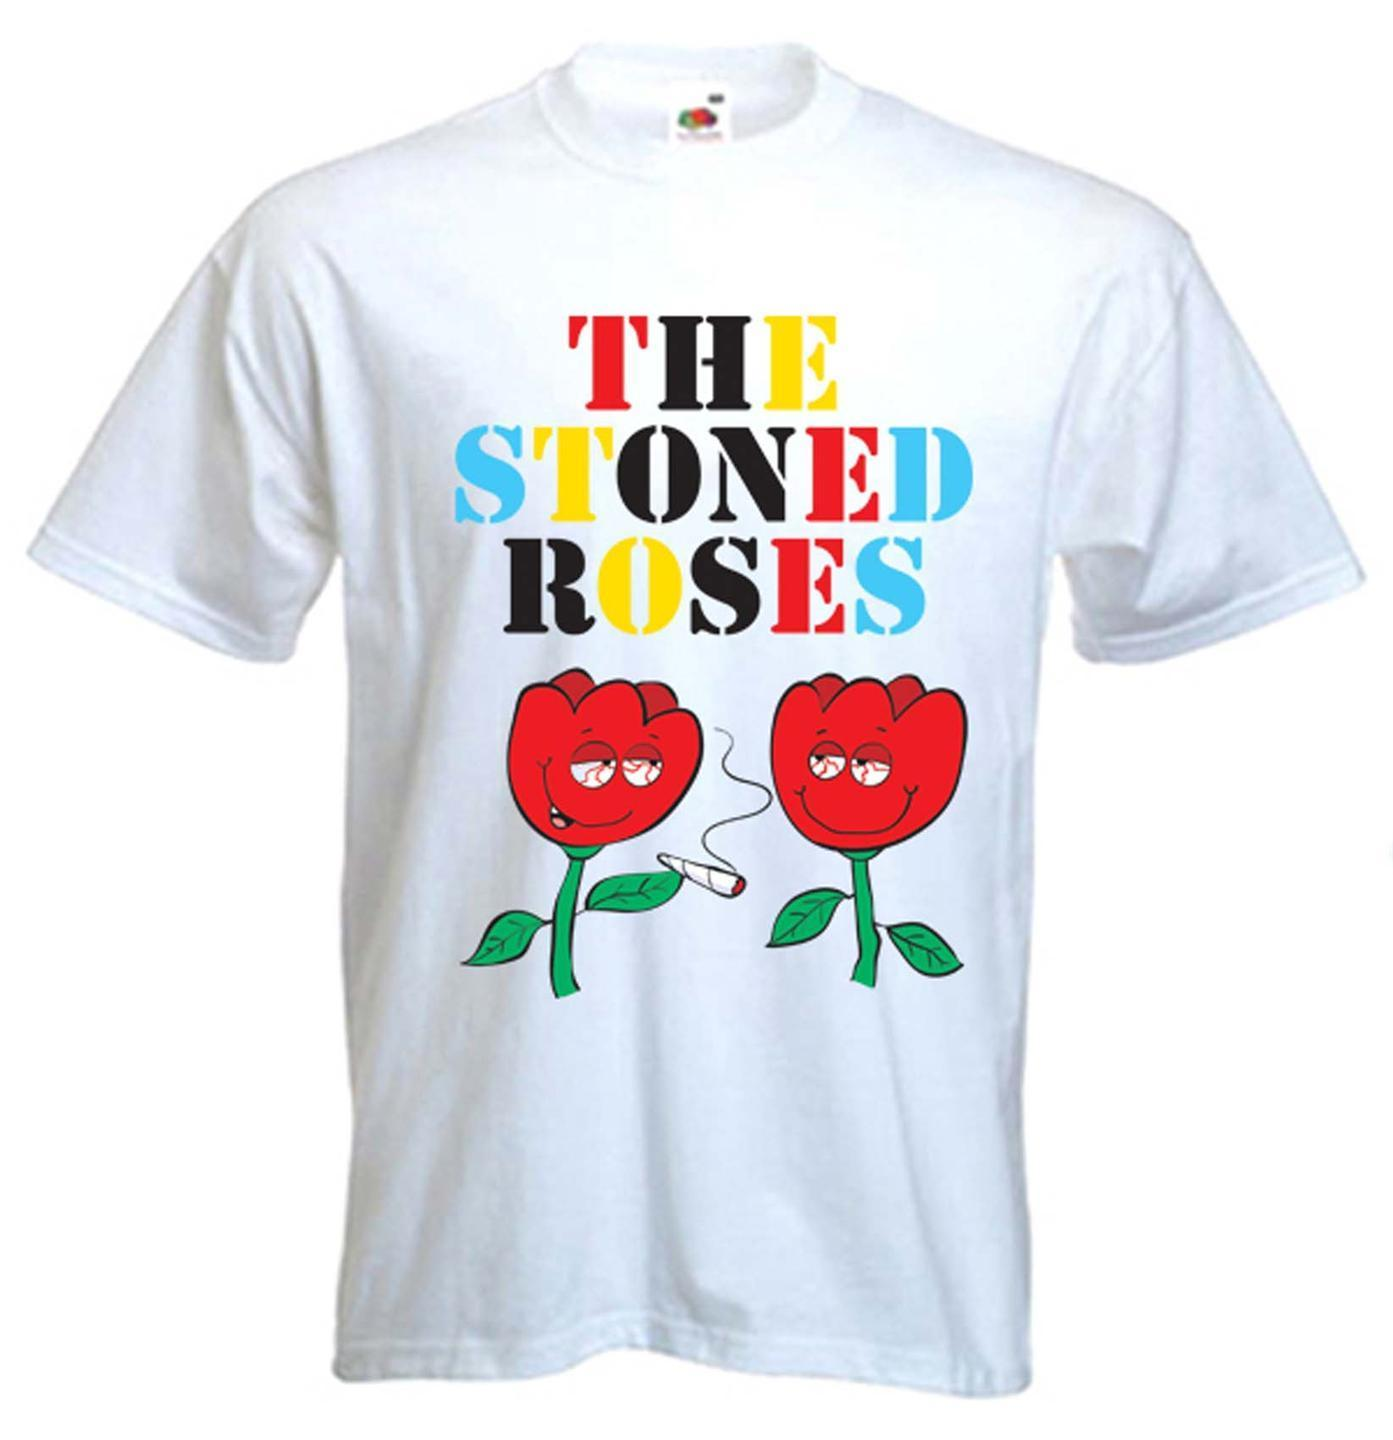 THE STONED ROSES T-SHIRT - Cannabis Festival Stone Smoking Bong Marijuana 1